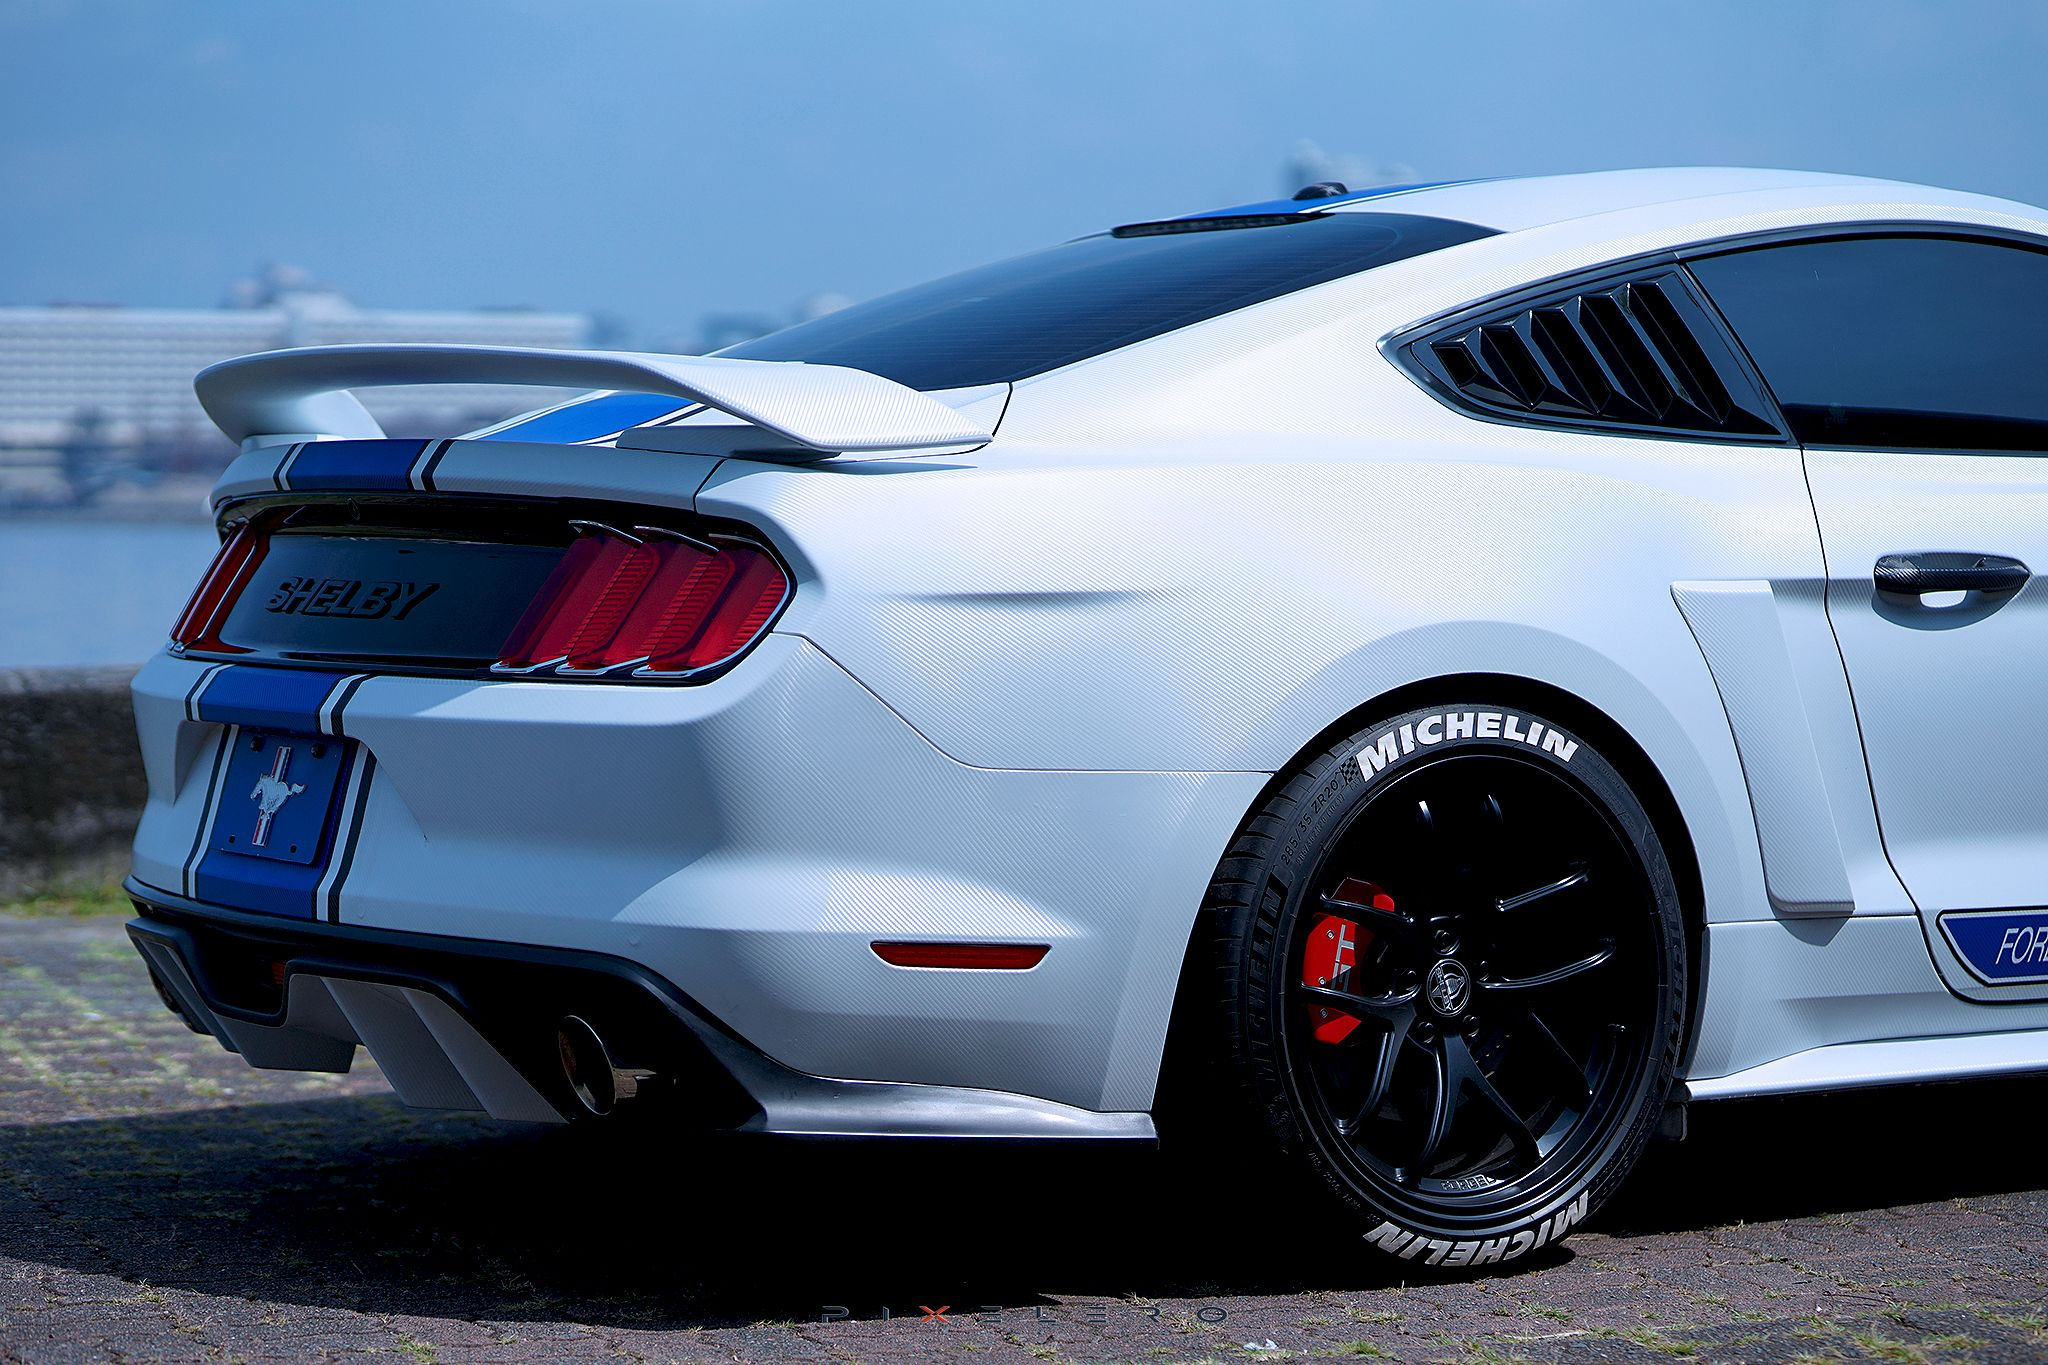 Mustang Ecoboost In Roush Side Scoops Michelin Pilot Sport 4s Tires W Tirestickers Sidewall Markers Defenderworx Quart Mustang Ecoboost Mustang Ford Mustang